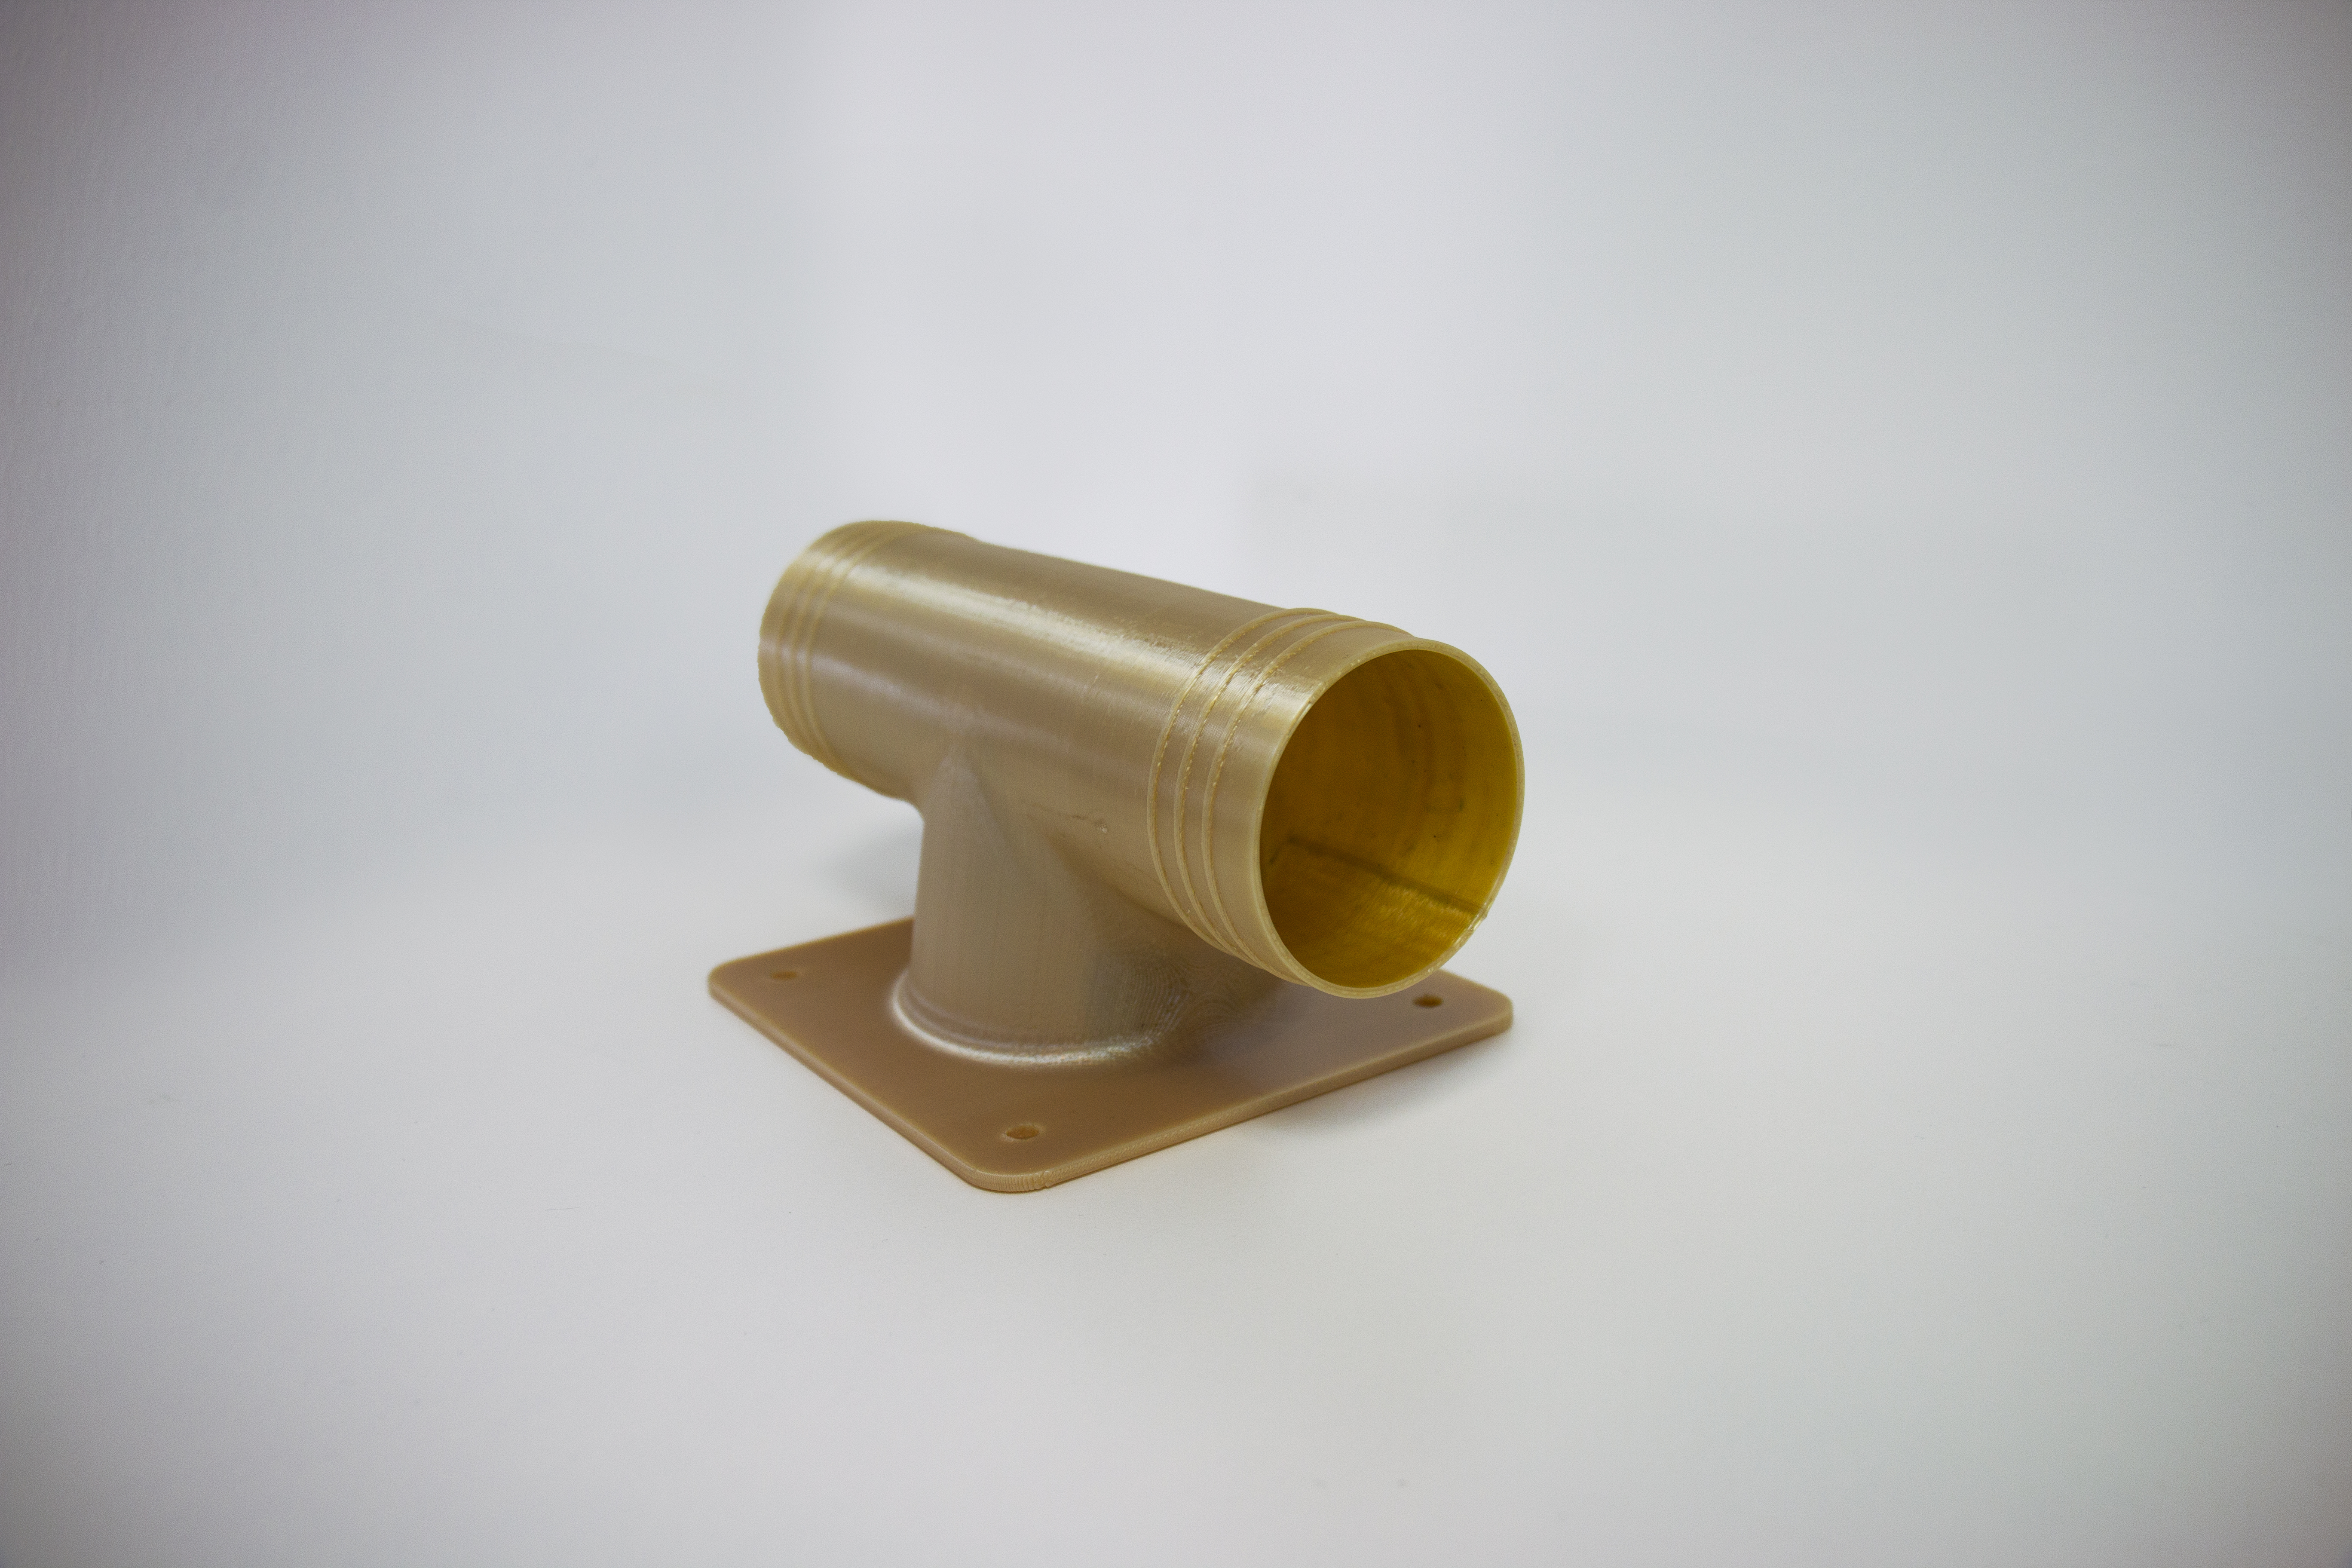 Flight approved 3D printed air duct for air conditioning. Image via Stratasys.